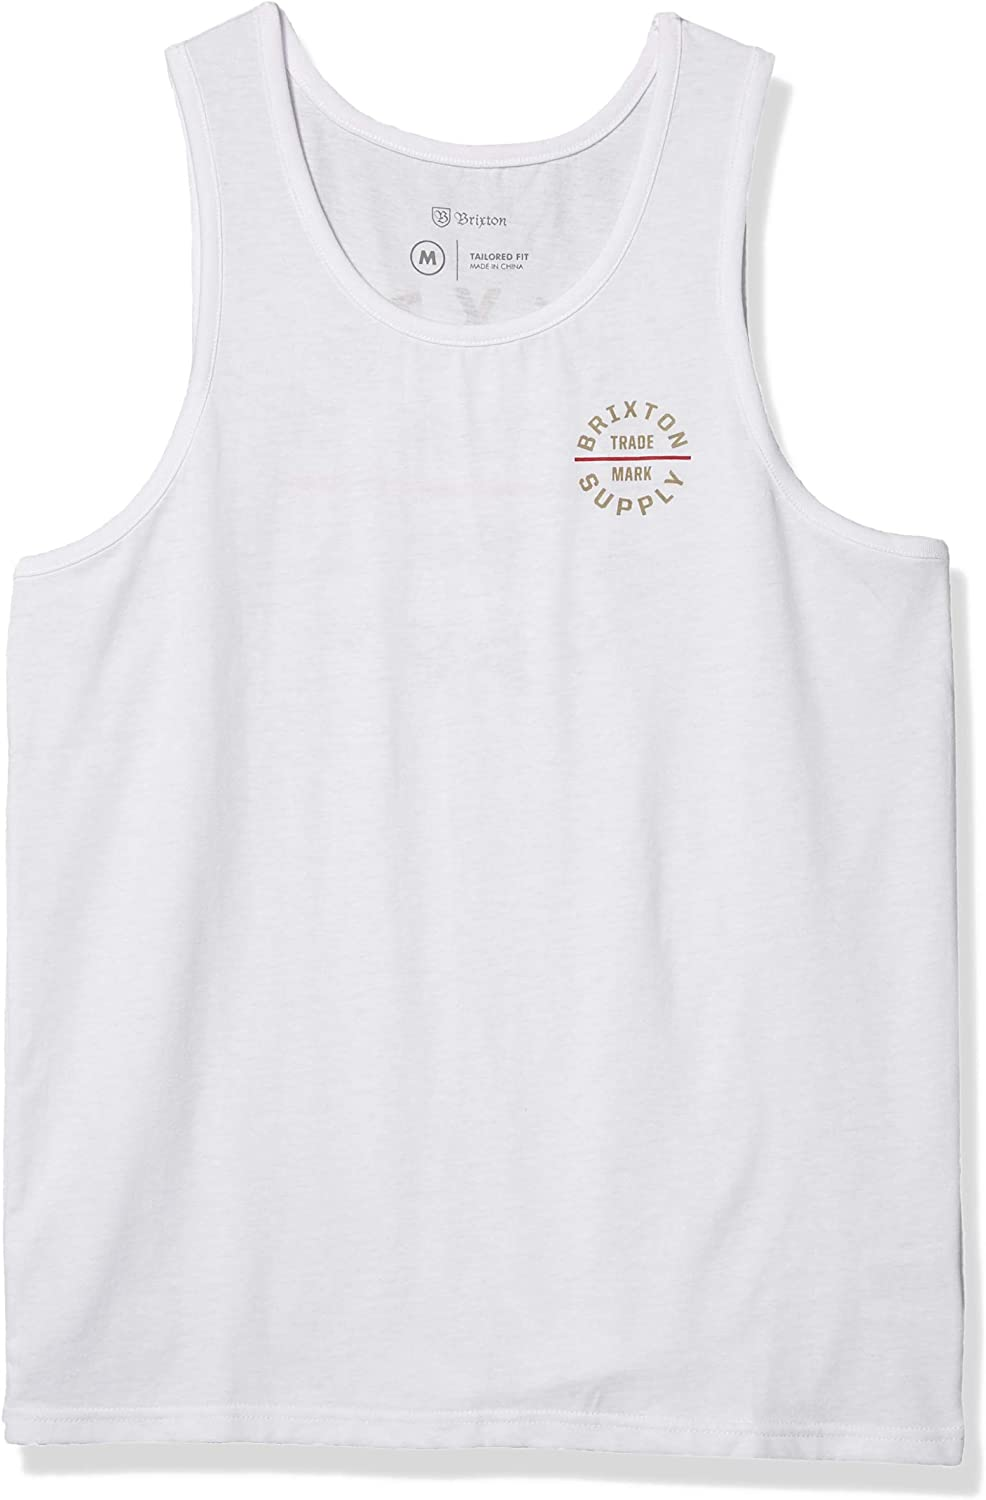 Brixton Men's Tank